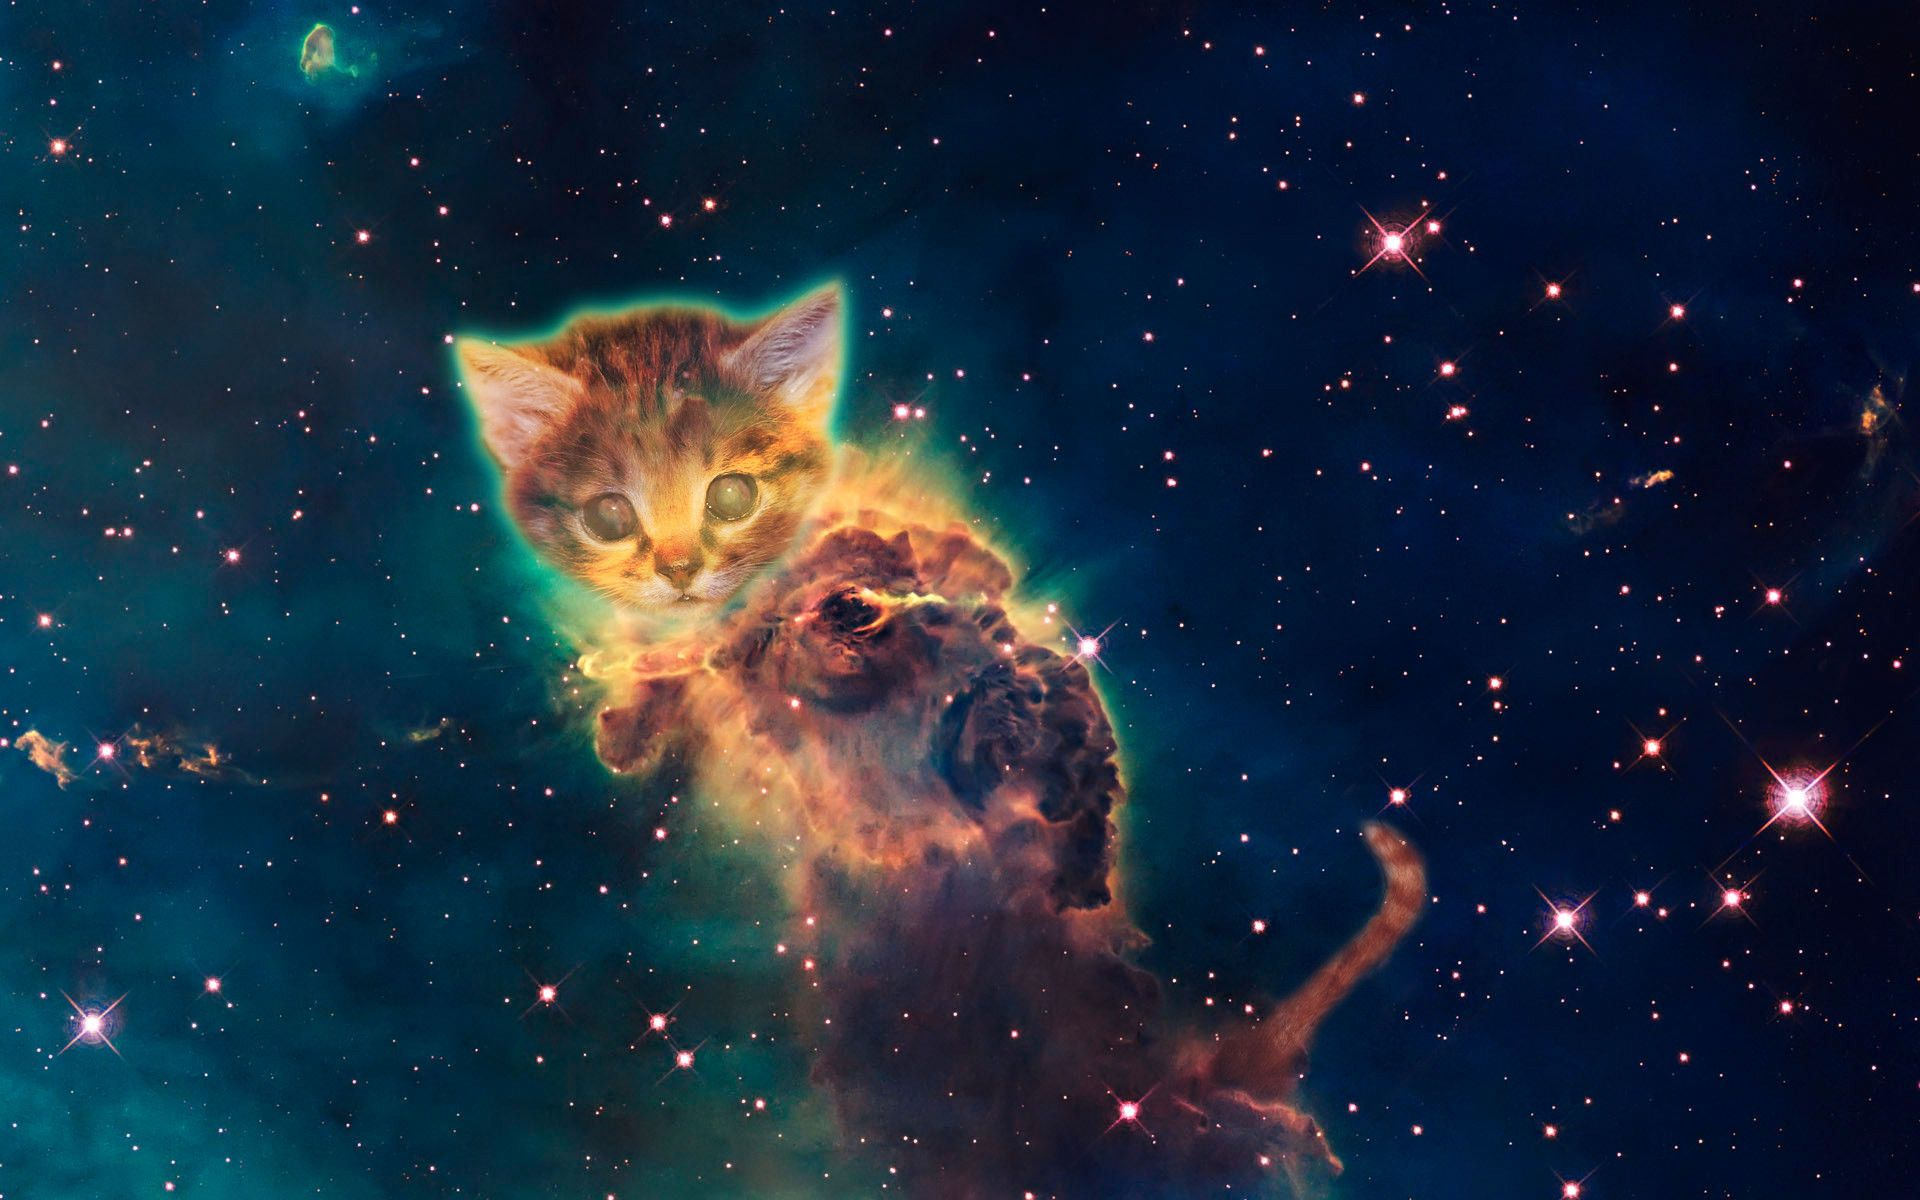 Galaxy Cat Wallpapers   Top Galaxy Cat Backgrounds 1920x1200